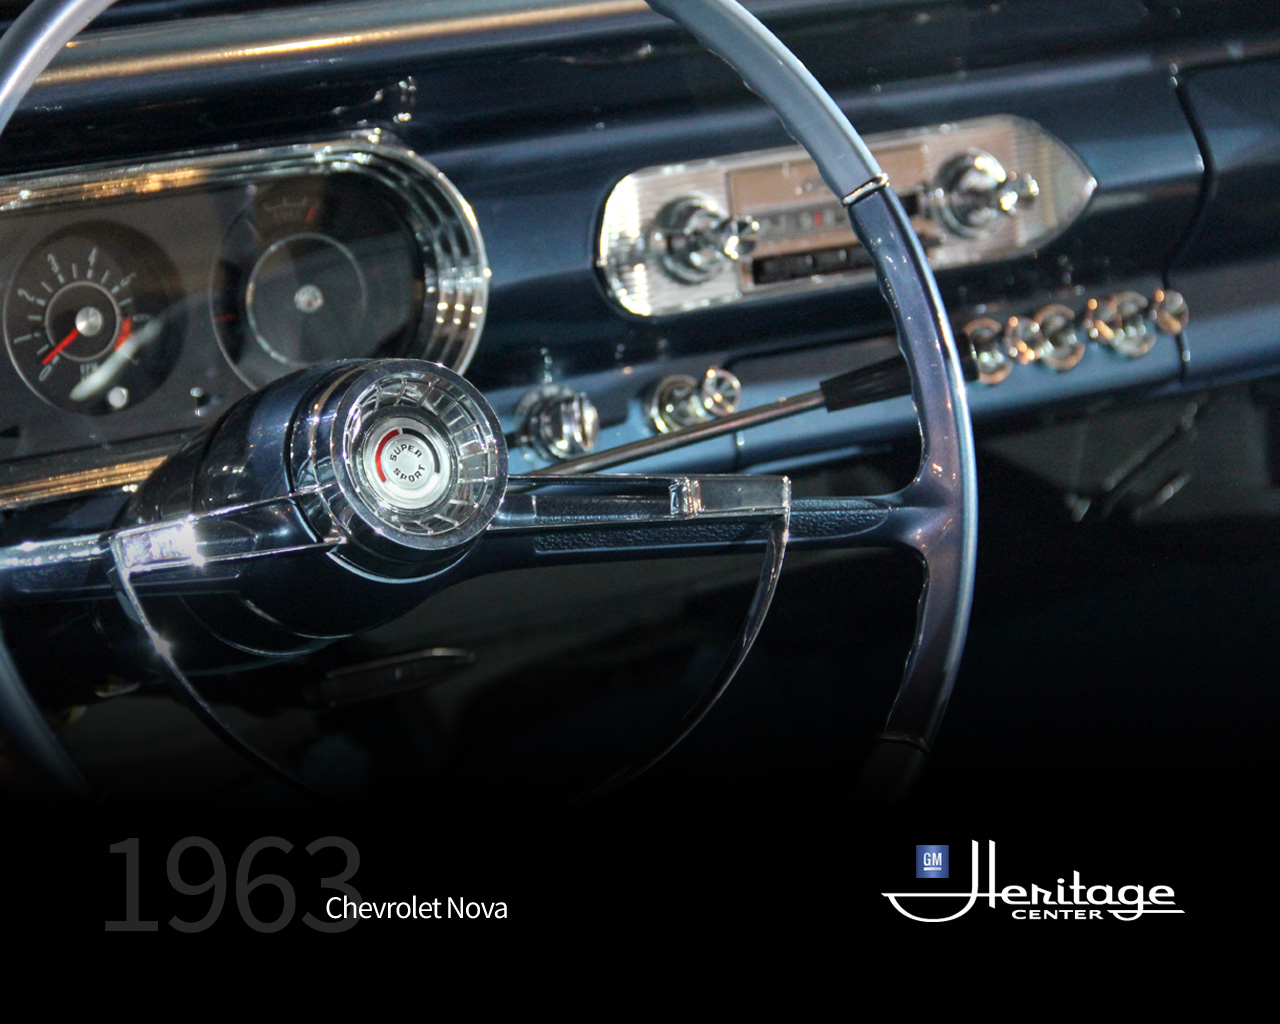 Gm heritage center collection 1963 chevy ii nova ss 1280x1024 1024x768 1963 sciox Choice Image